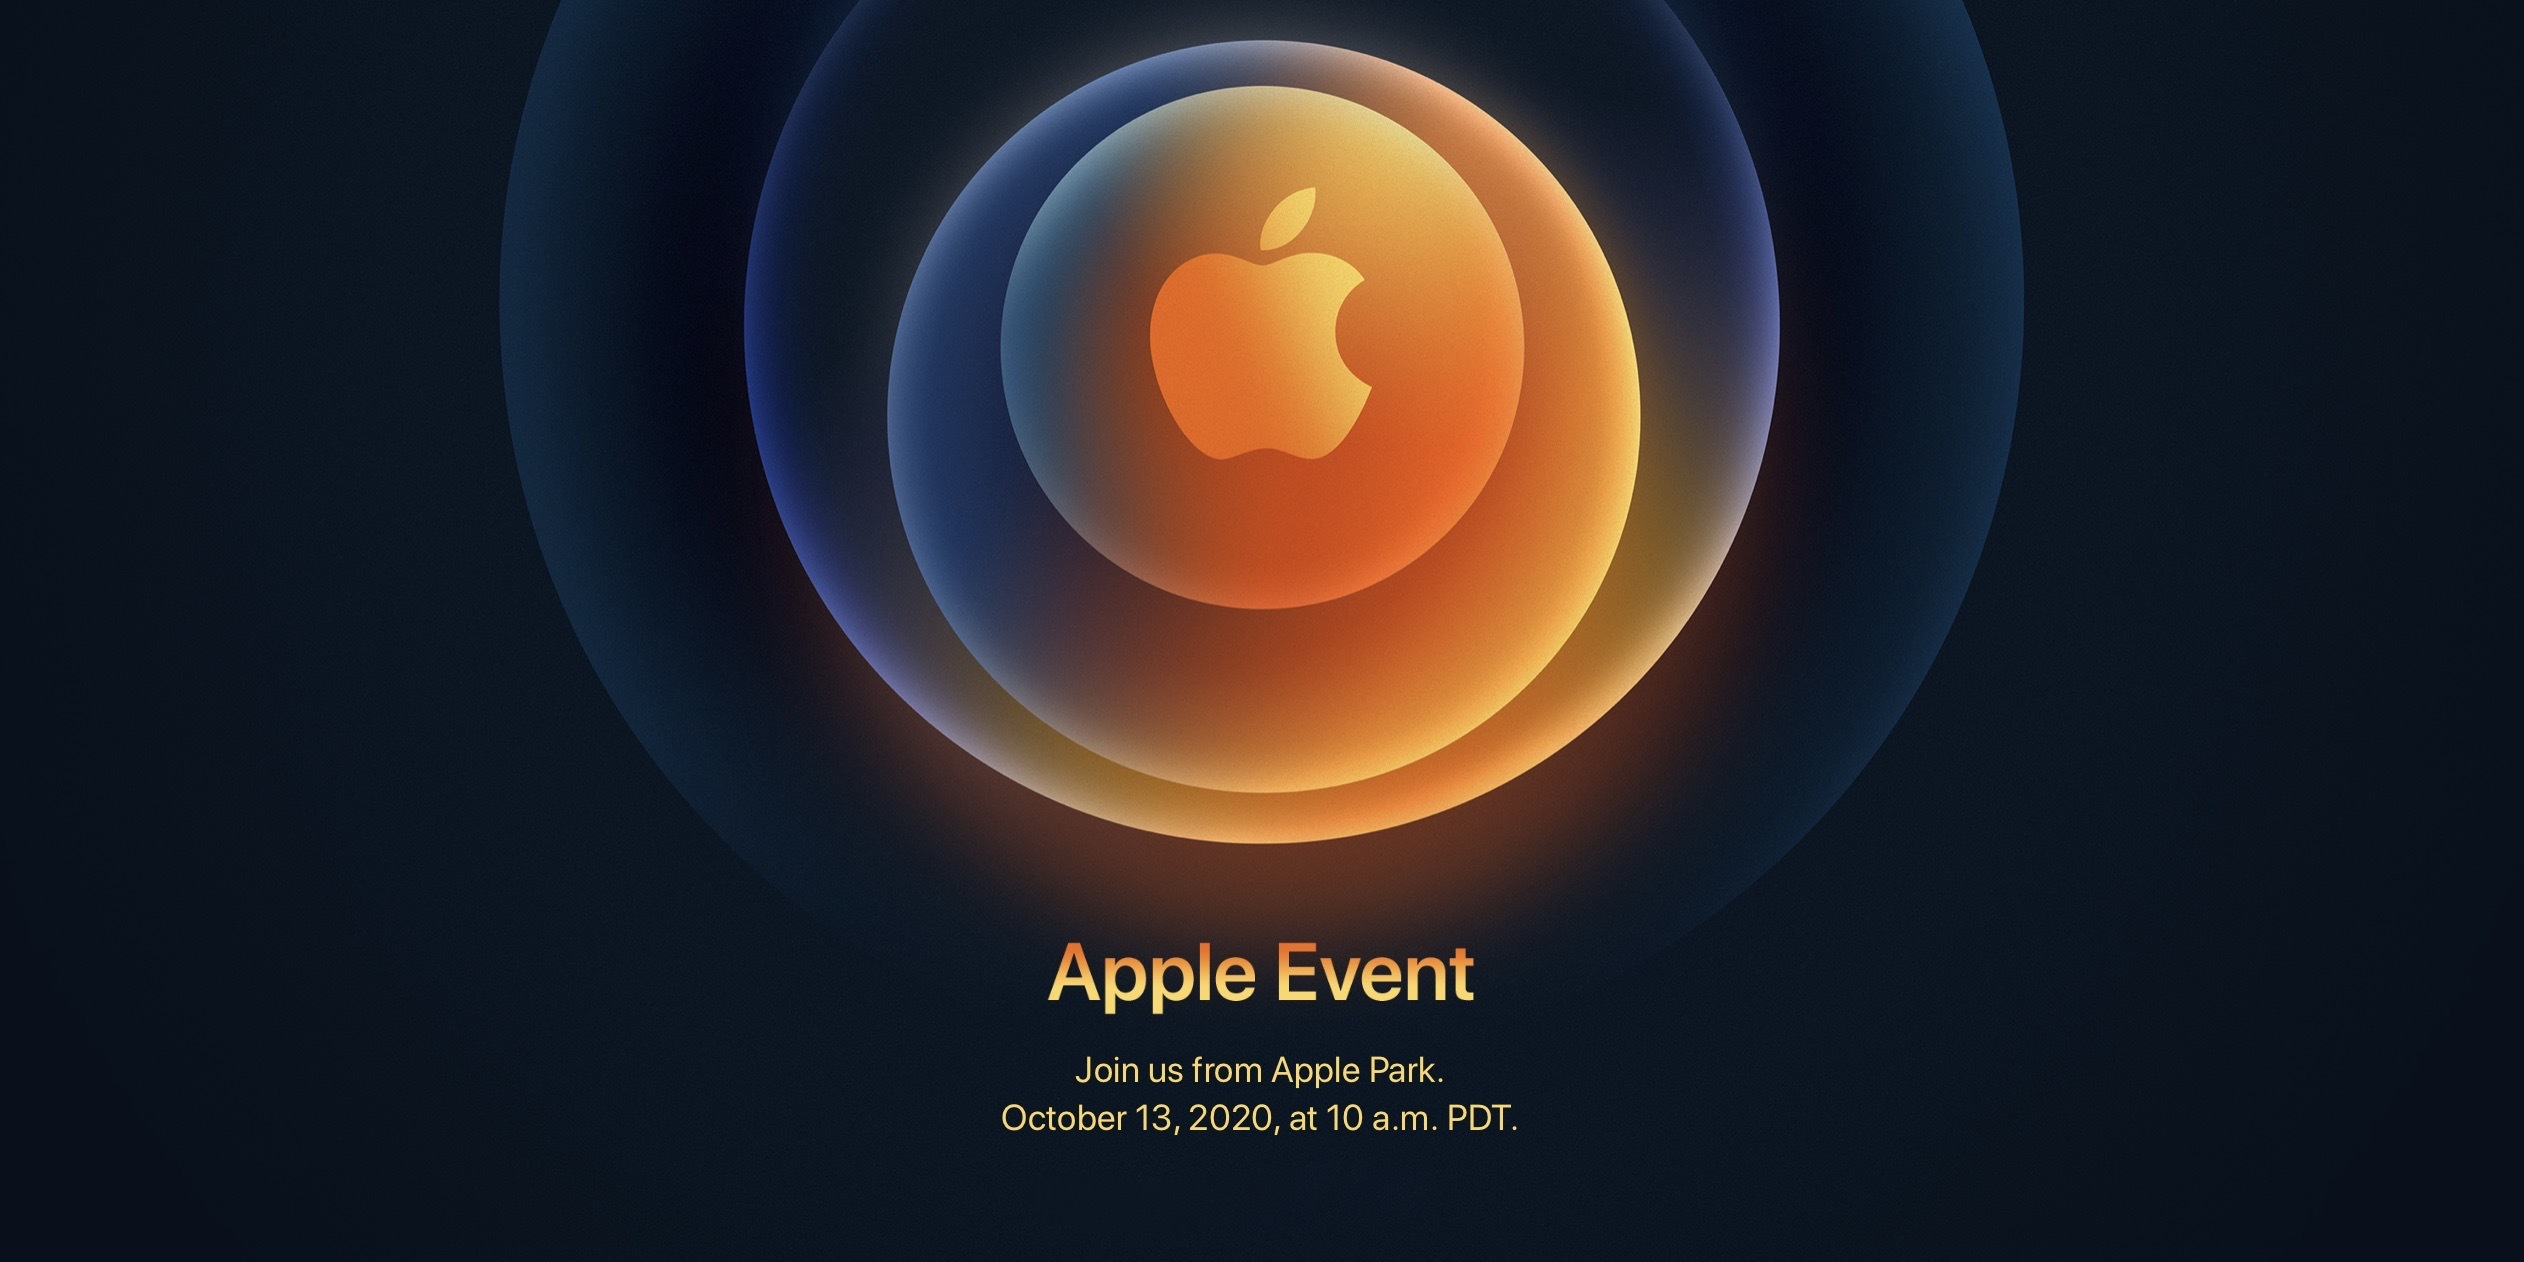 Apple Confirms Iphone 12 Event Here S What We Know 9to5mac